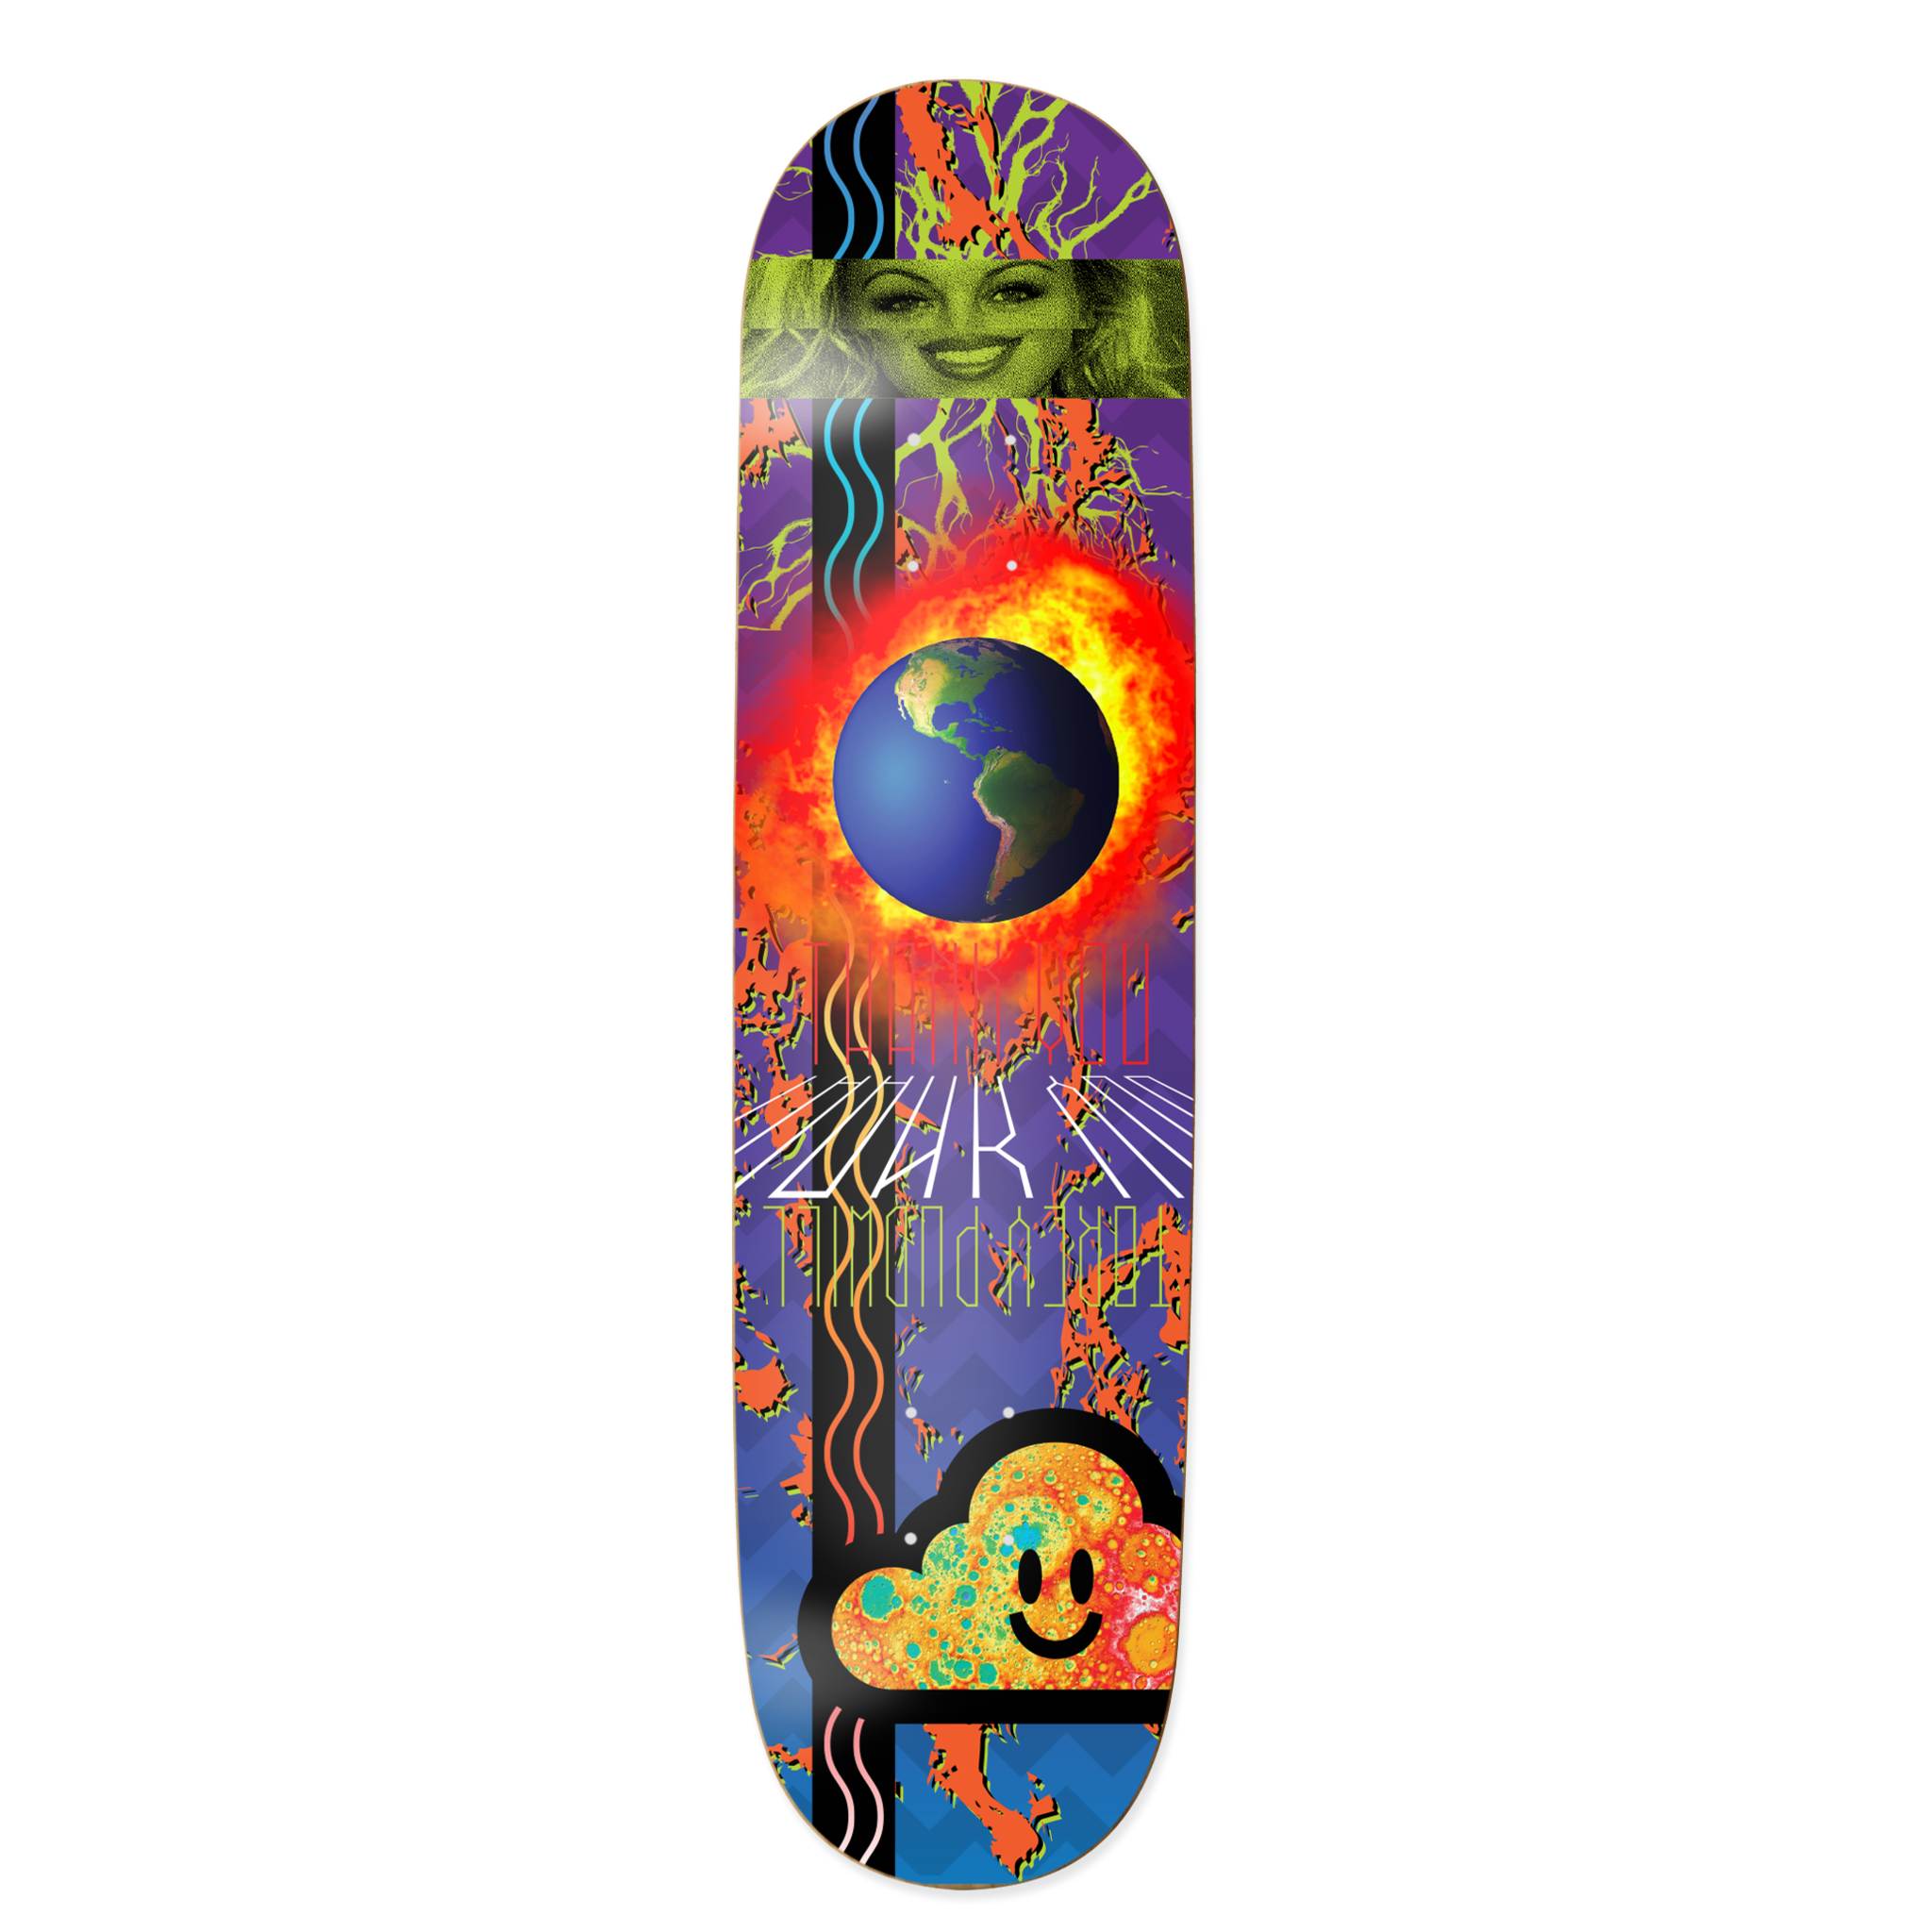 Blue Planet Torey Pudwill Deck